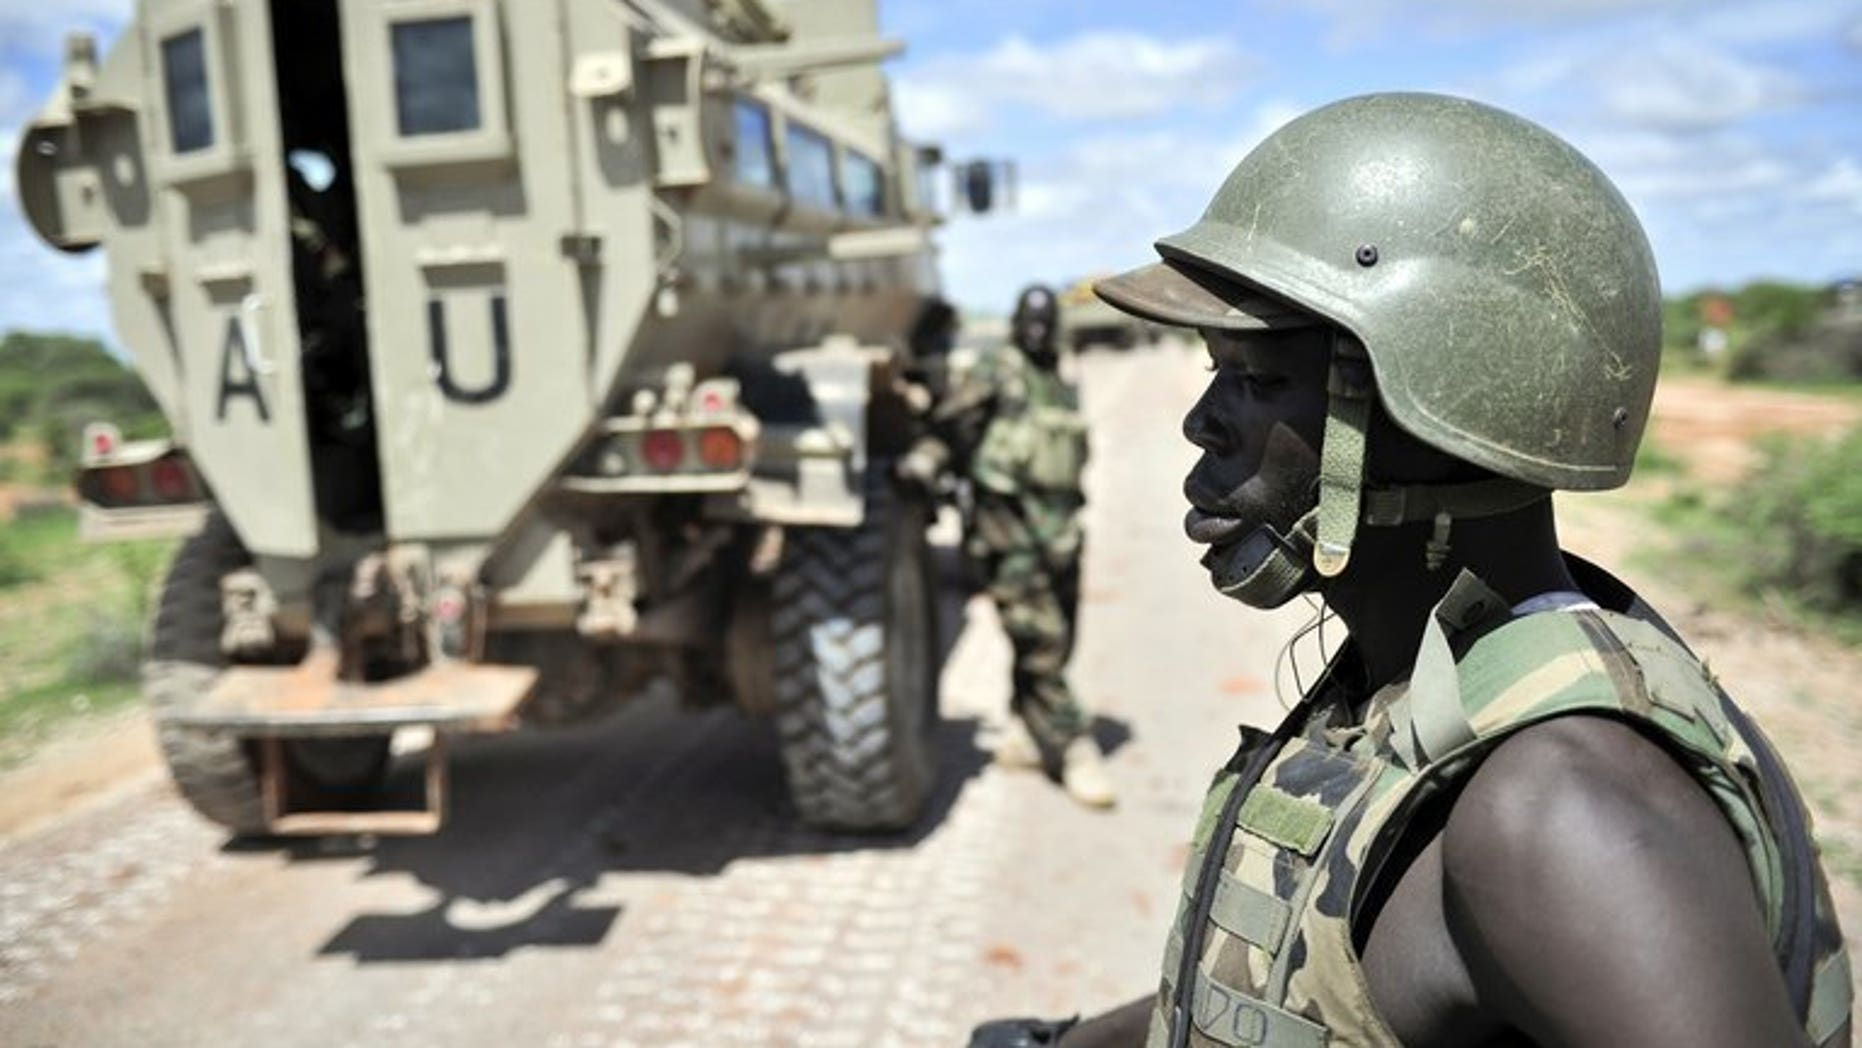 Ugandan soldiers, part of the African Union Mission in Somalia (AMISOM), patrol along the Afgooye-Baidoa road in Somalia on October 19, 2012. Uganda said it had suspended 24 of its army officers, who were part of a UN-mandated force battling Al-Qaeda linked rebels in Somalia, over corruption allegations.